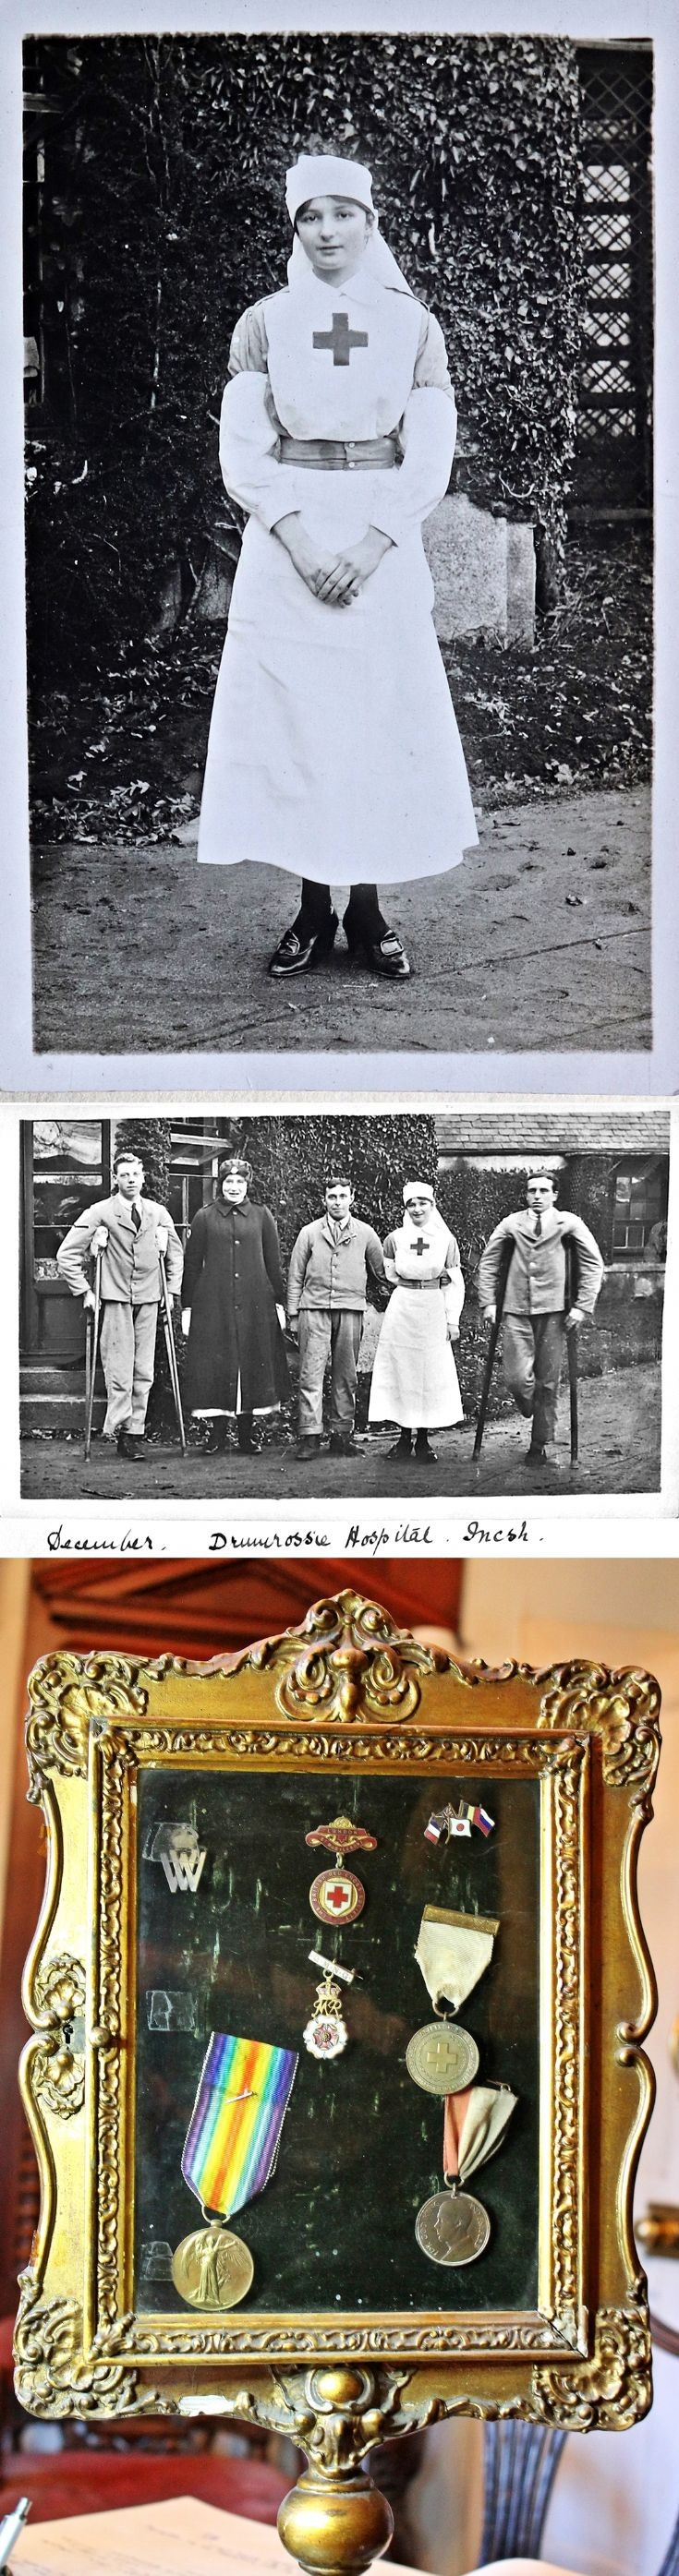 14 Bettine  VAD Duties 1917